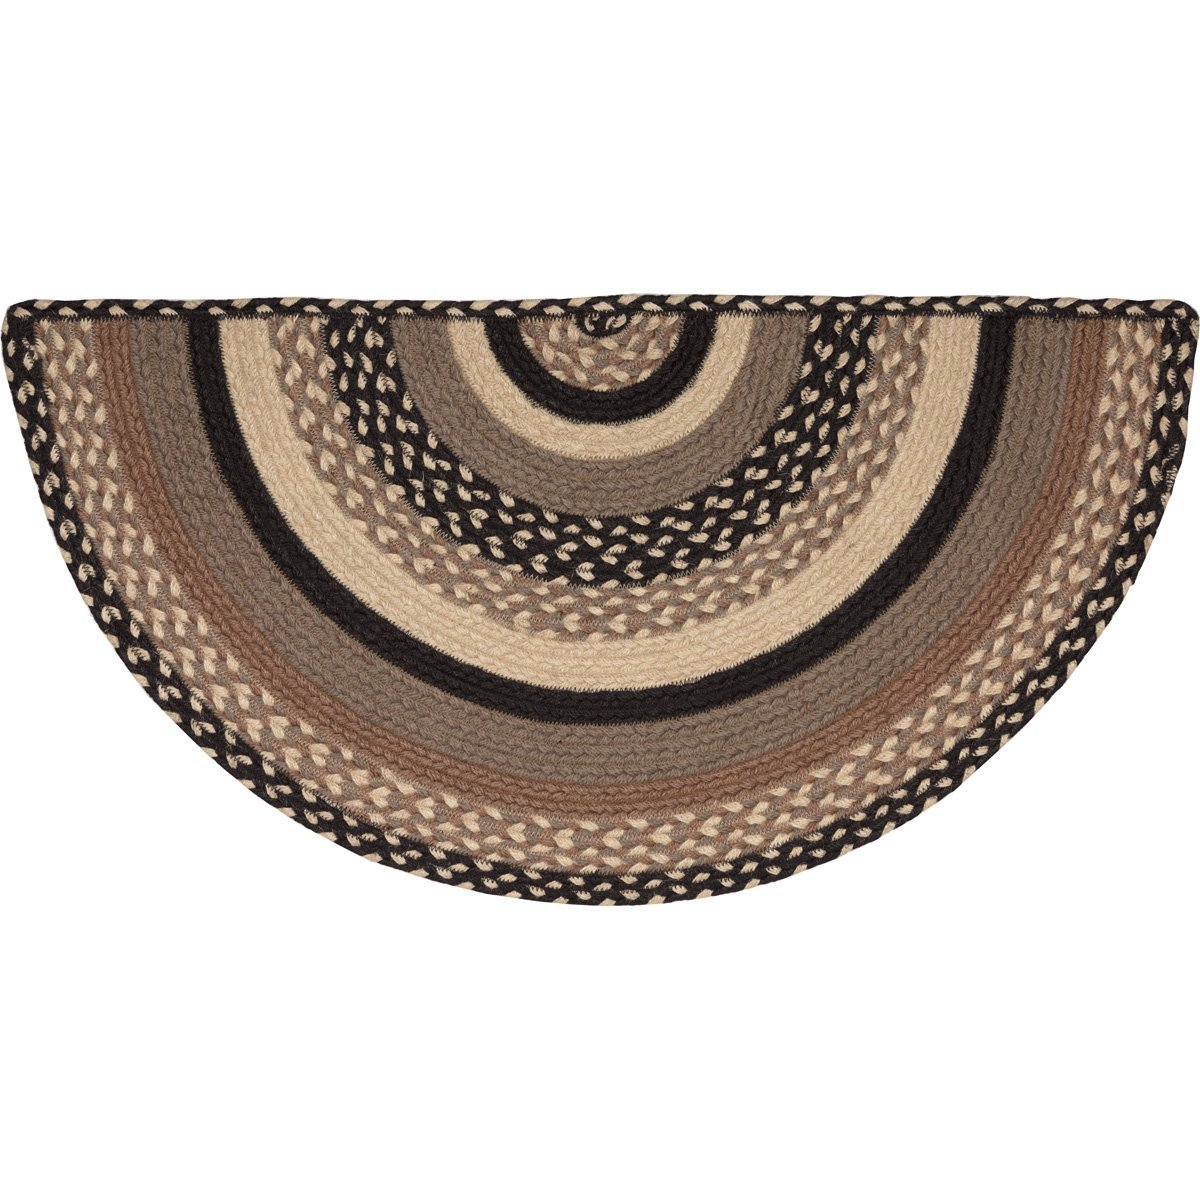 Sawyer Mill Charcoal Jute Rug Half Circle.